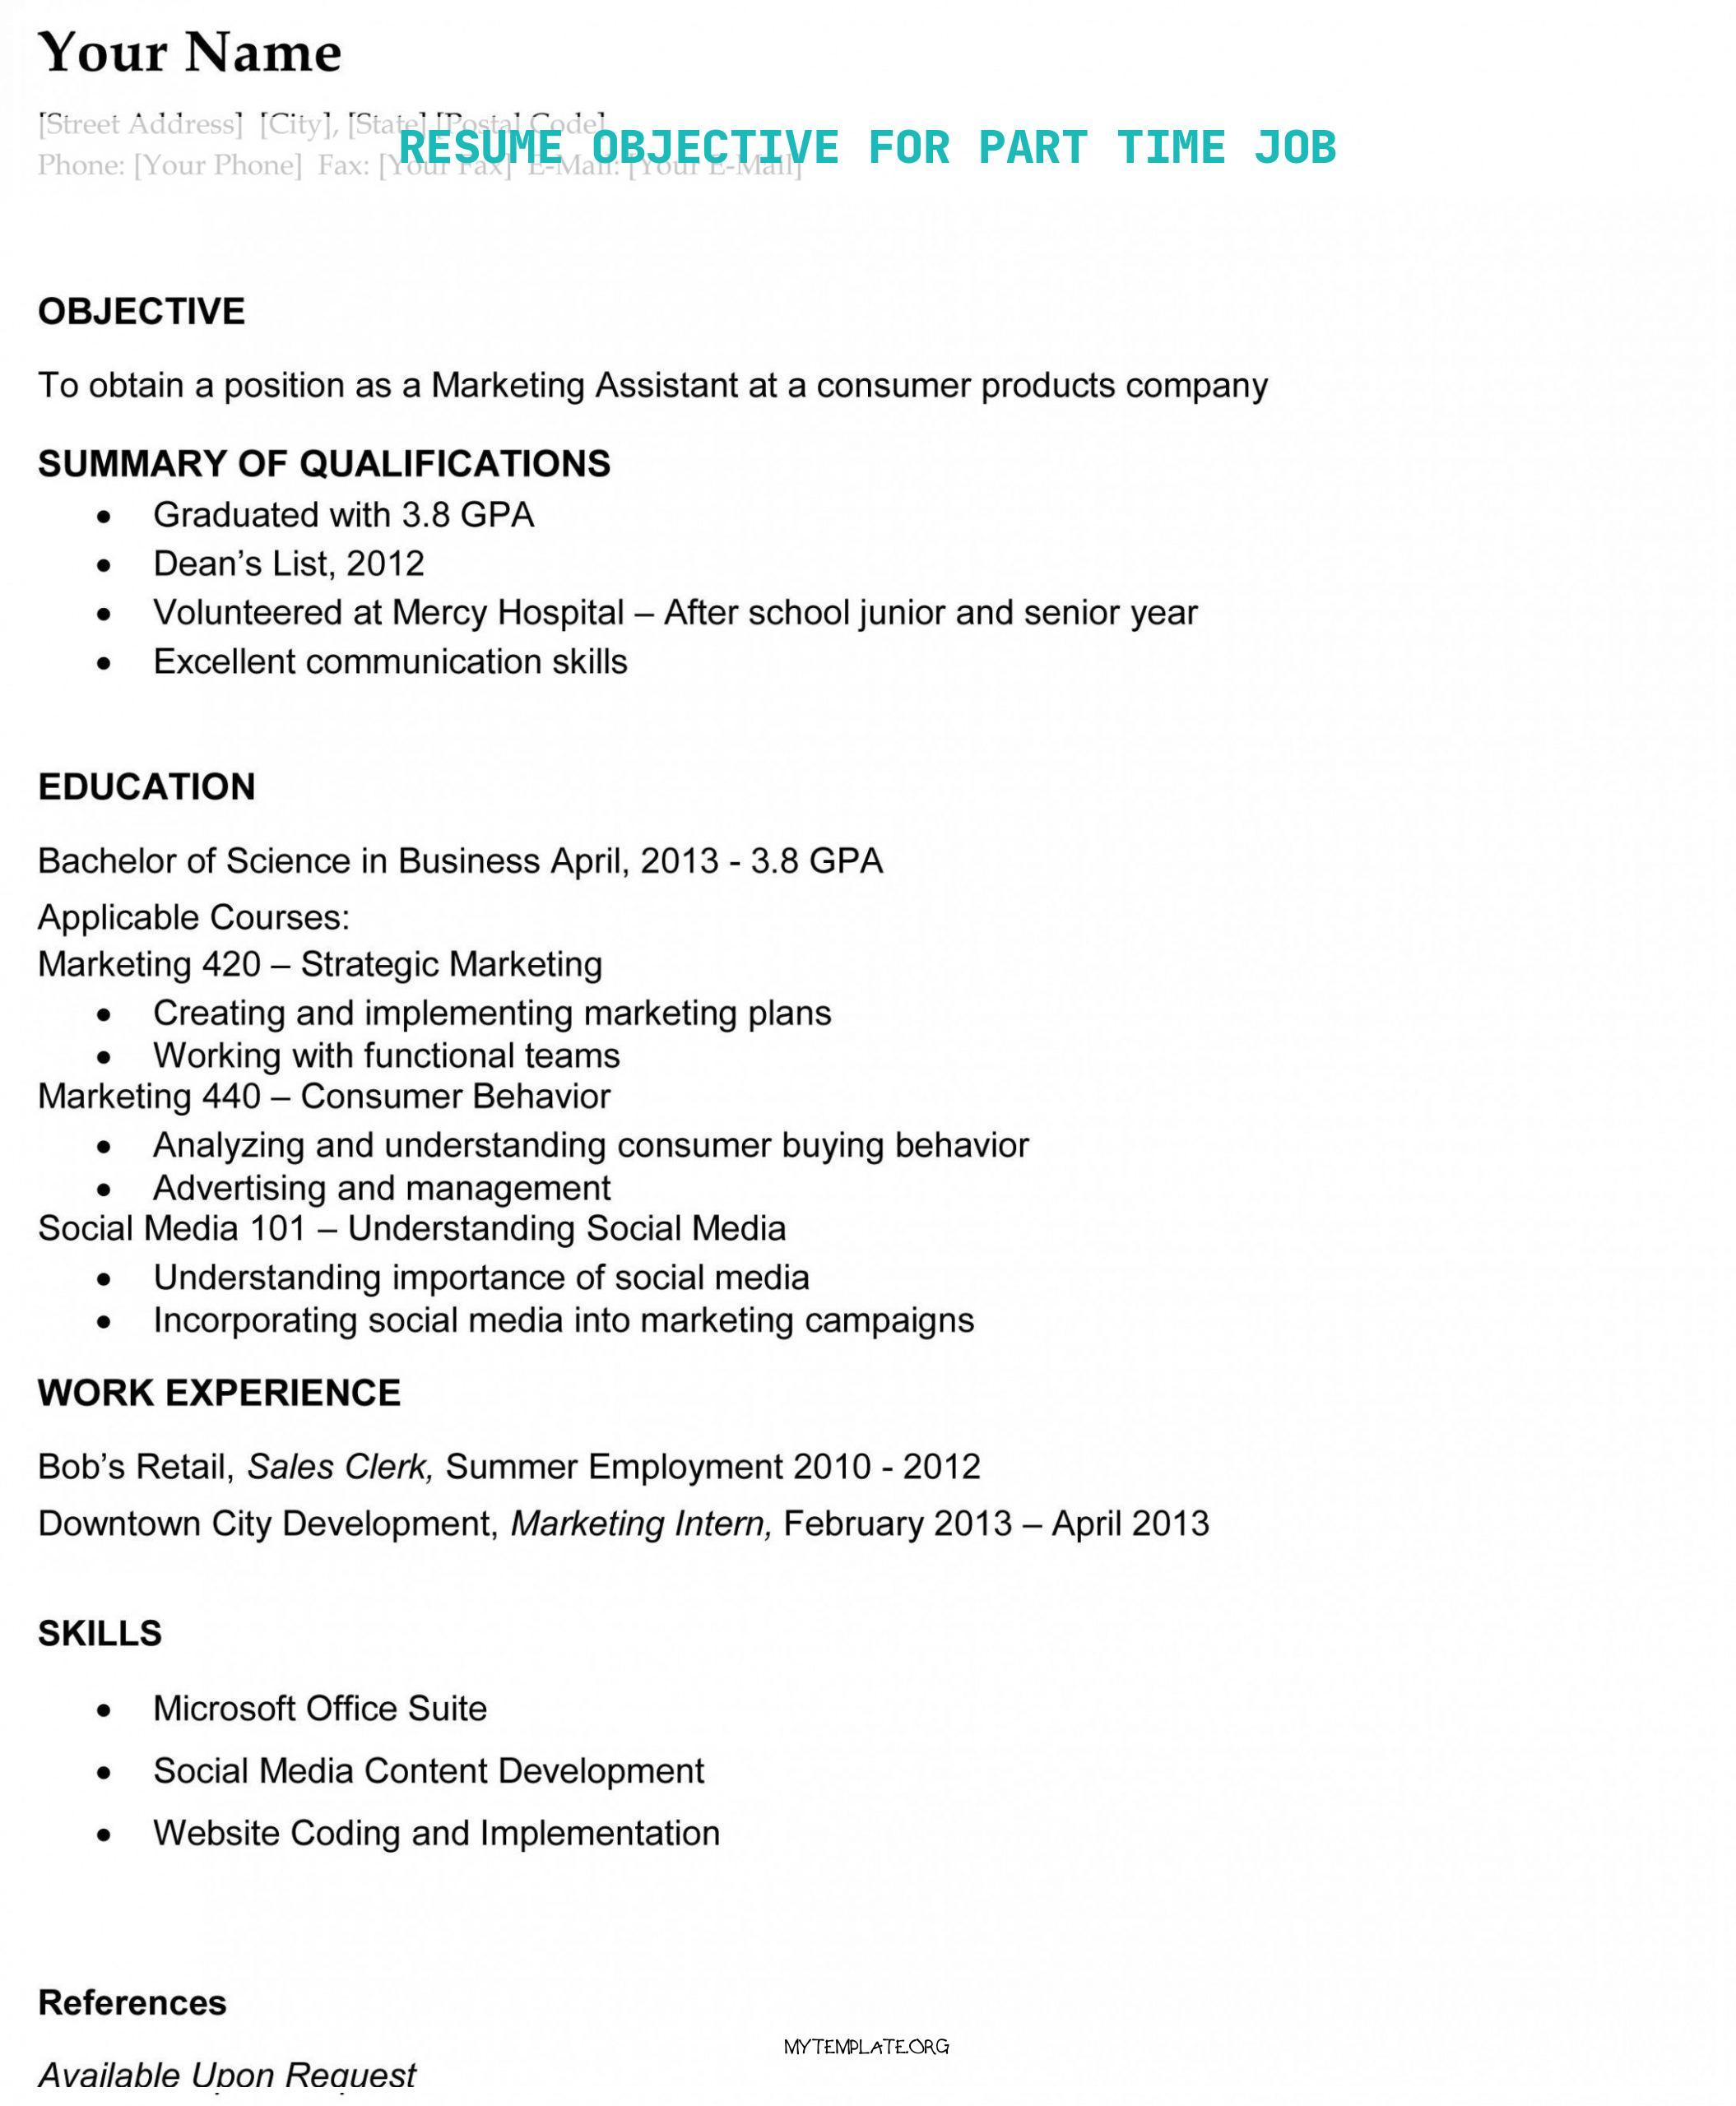 resume objective for part time job free templates template of goal school pupil pin adobe Resume Part Time Job Resume Template